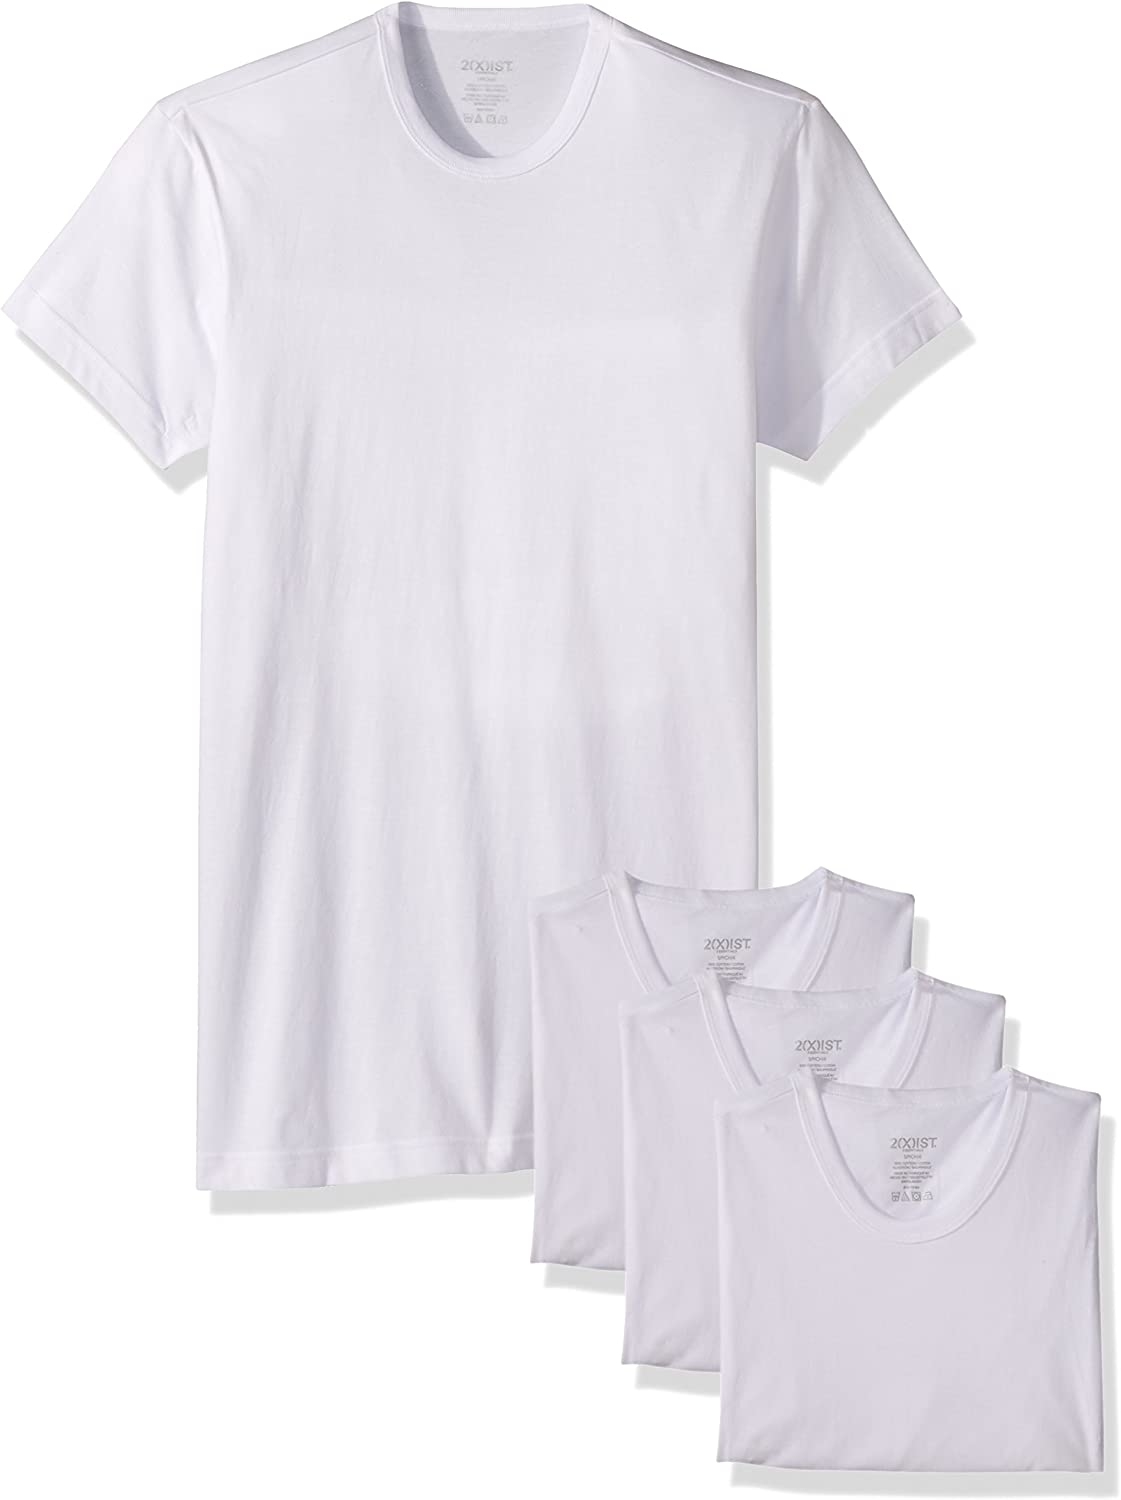 2(X)IST Mens Essential Cotton Slim Fit Crew Neck T-Shirt 3-Pack Base Layer Top